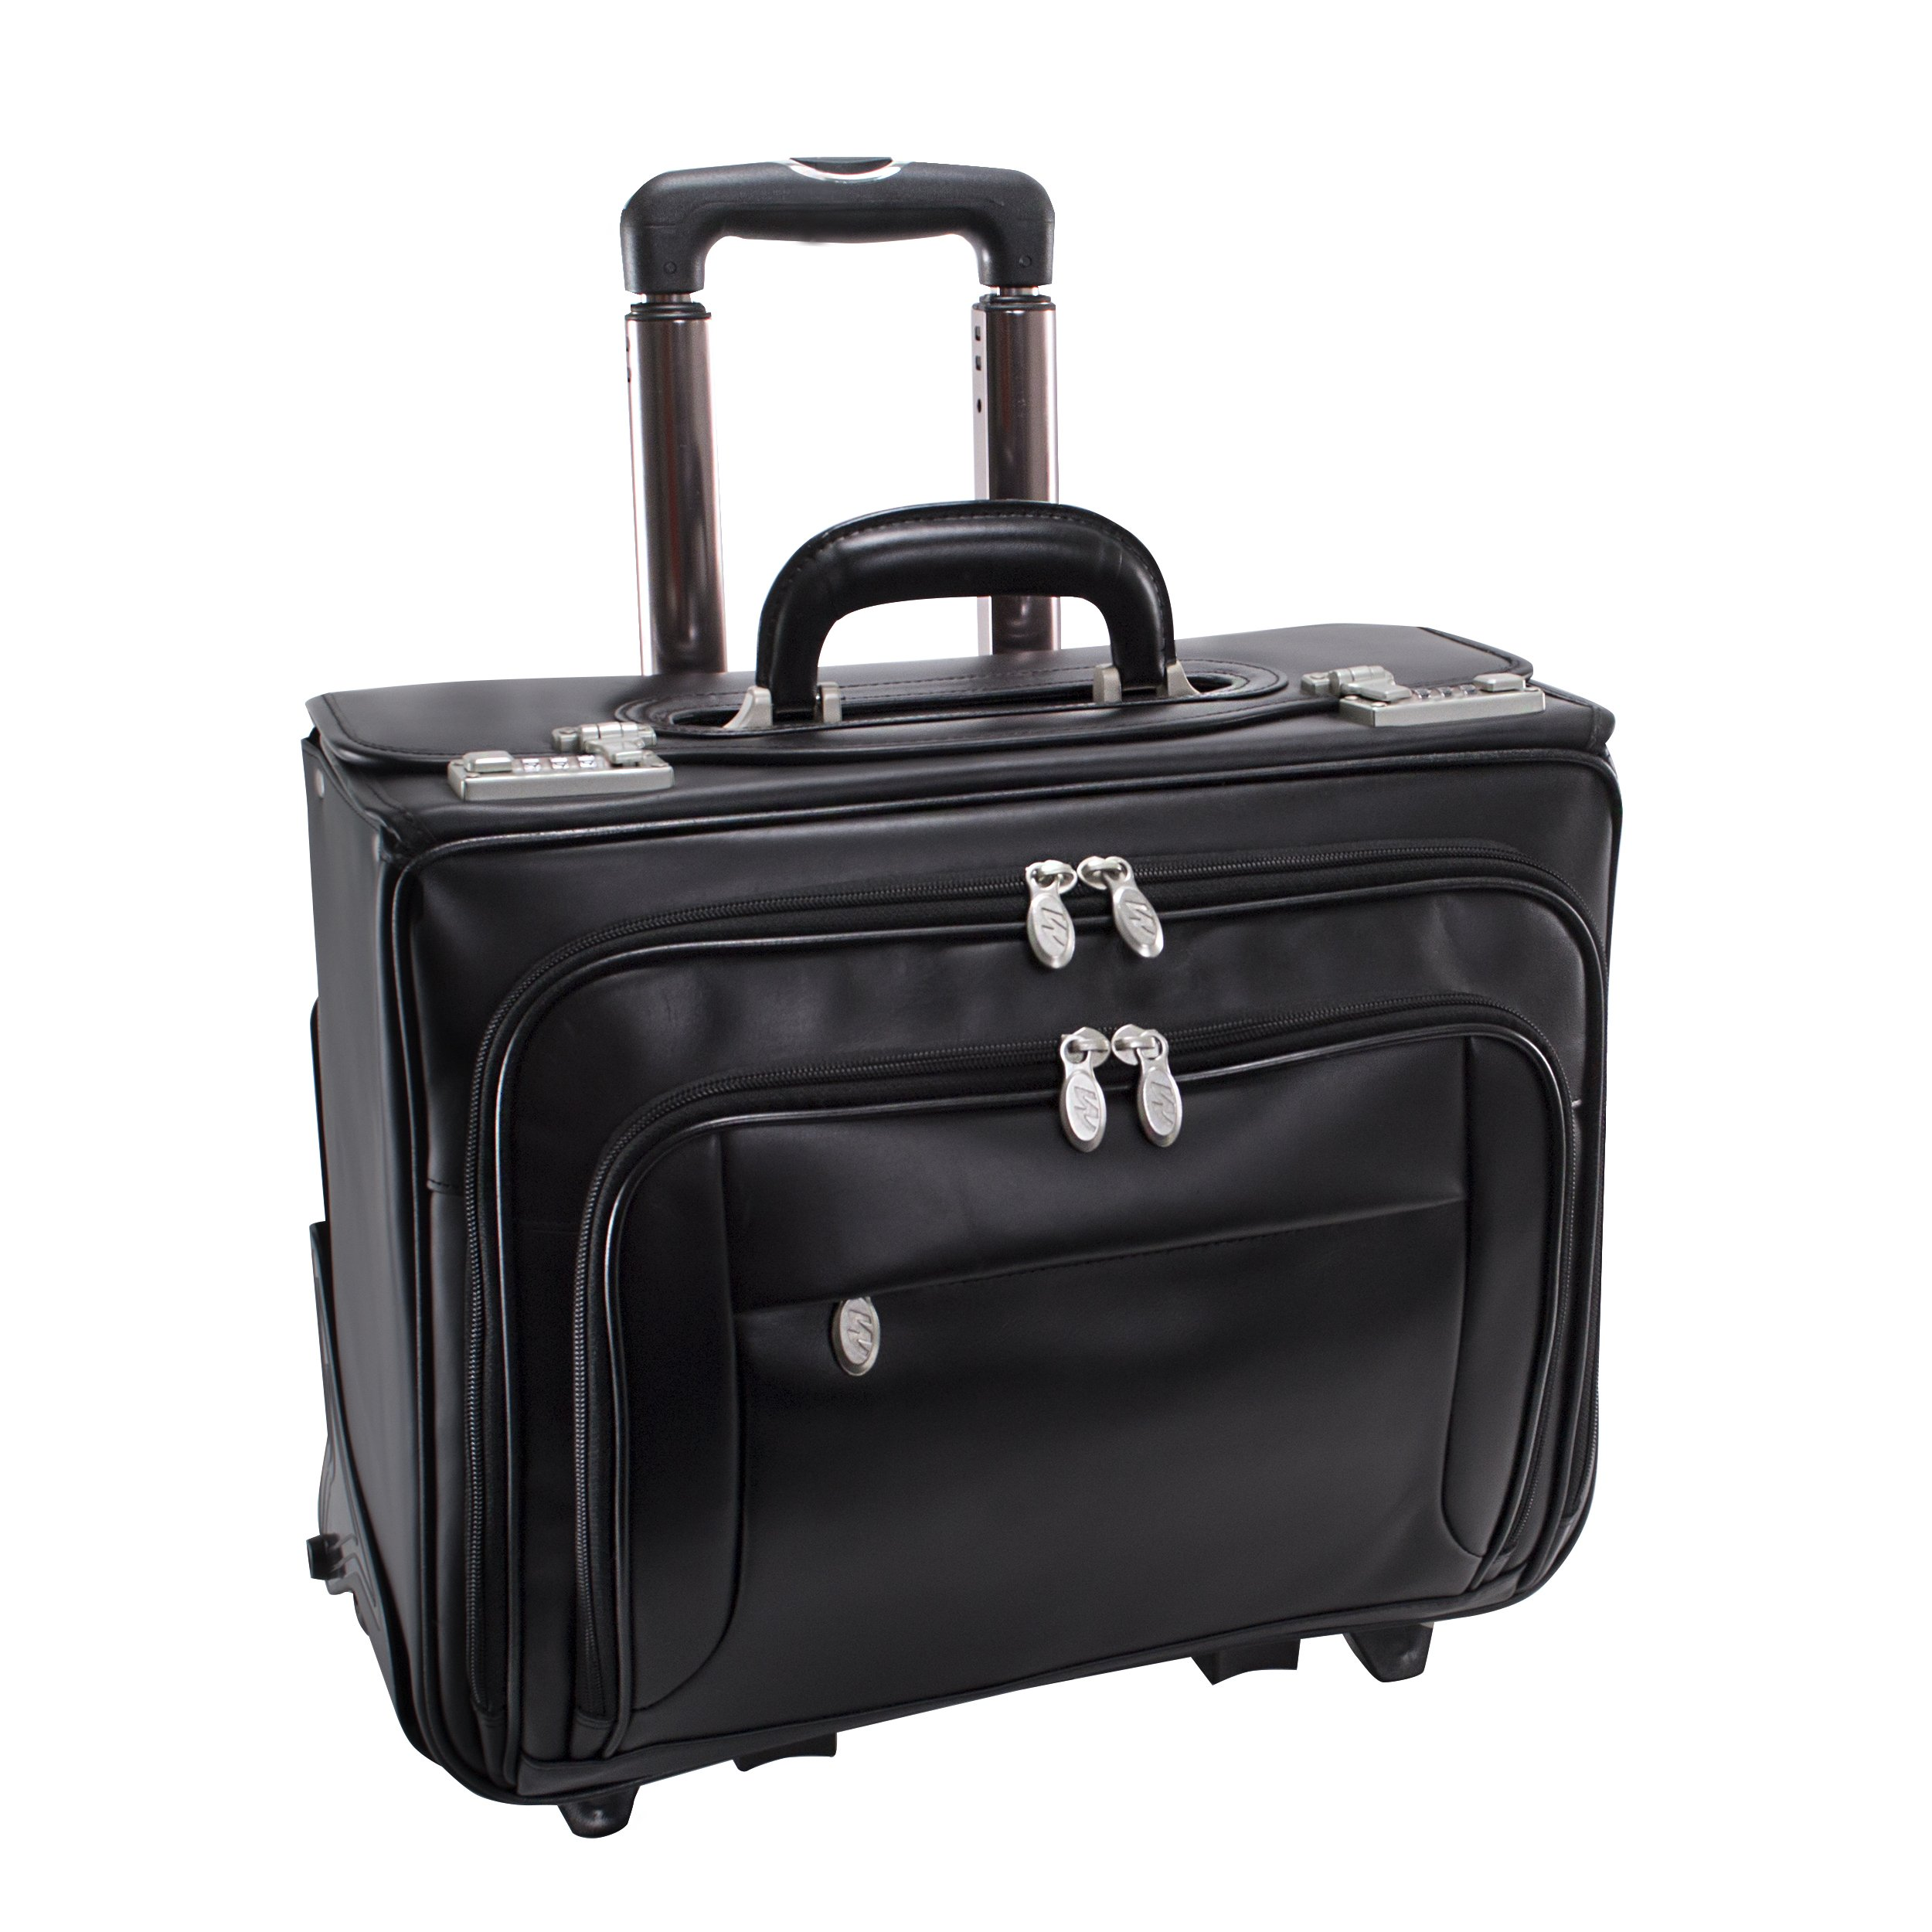 McKleinUSA SHERIDAN 84665 Black 17 Detachable-Wheeled Catalog Case